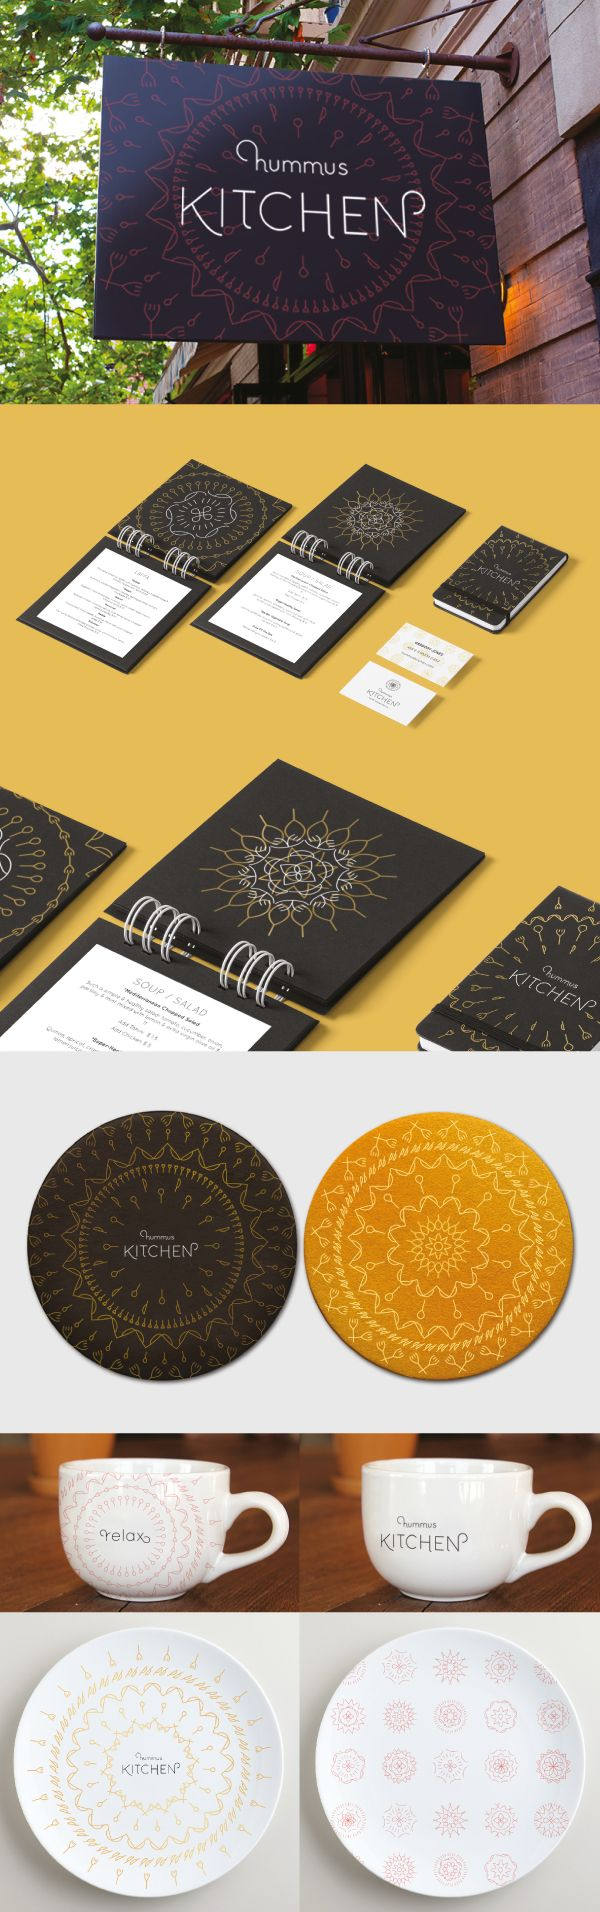 Hummus Kitchen Brand on Behance